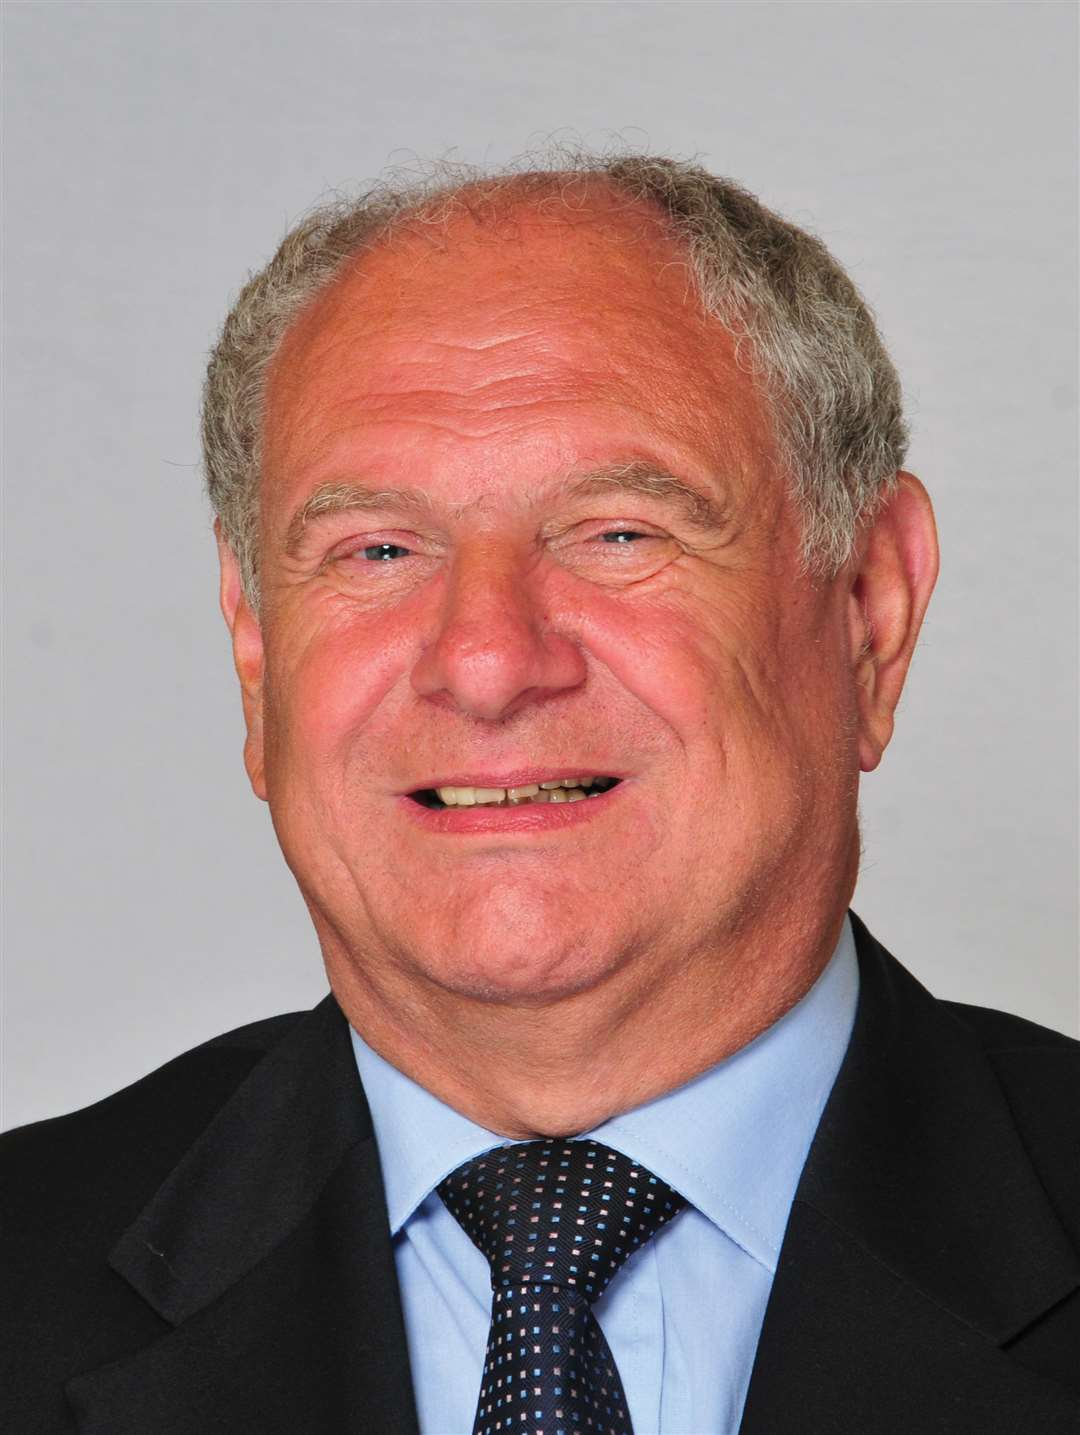 Cllr David Brake, Medway Council cabinet member for public health and chairman of the Medway Health and Wellbeing Board